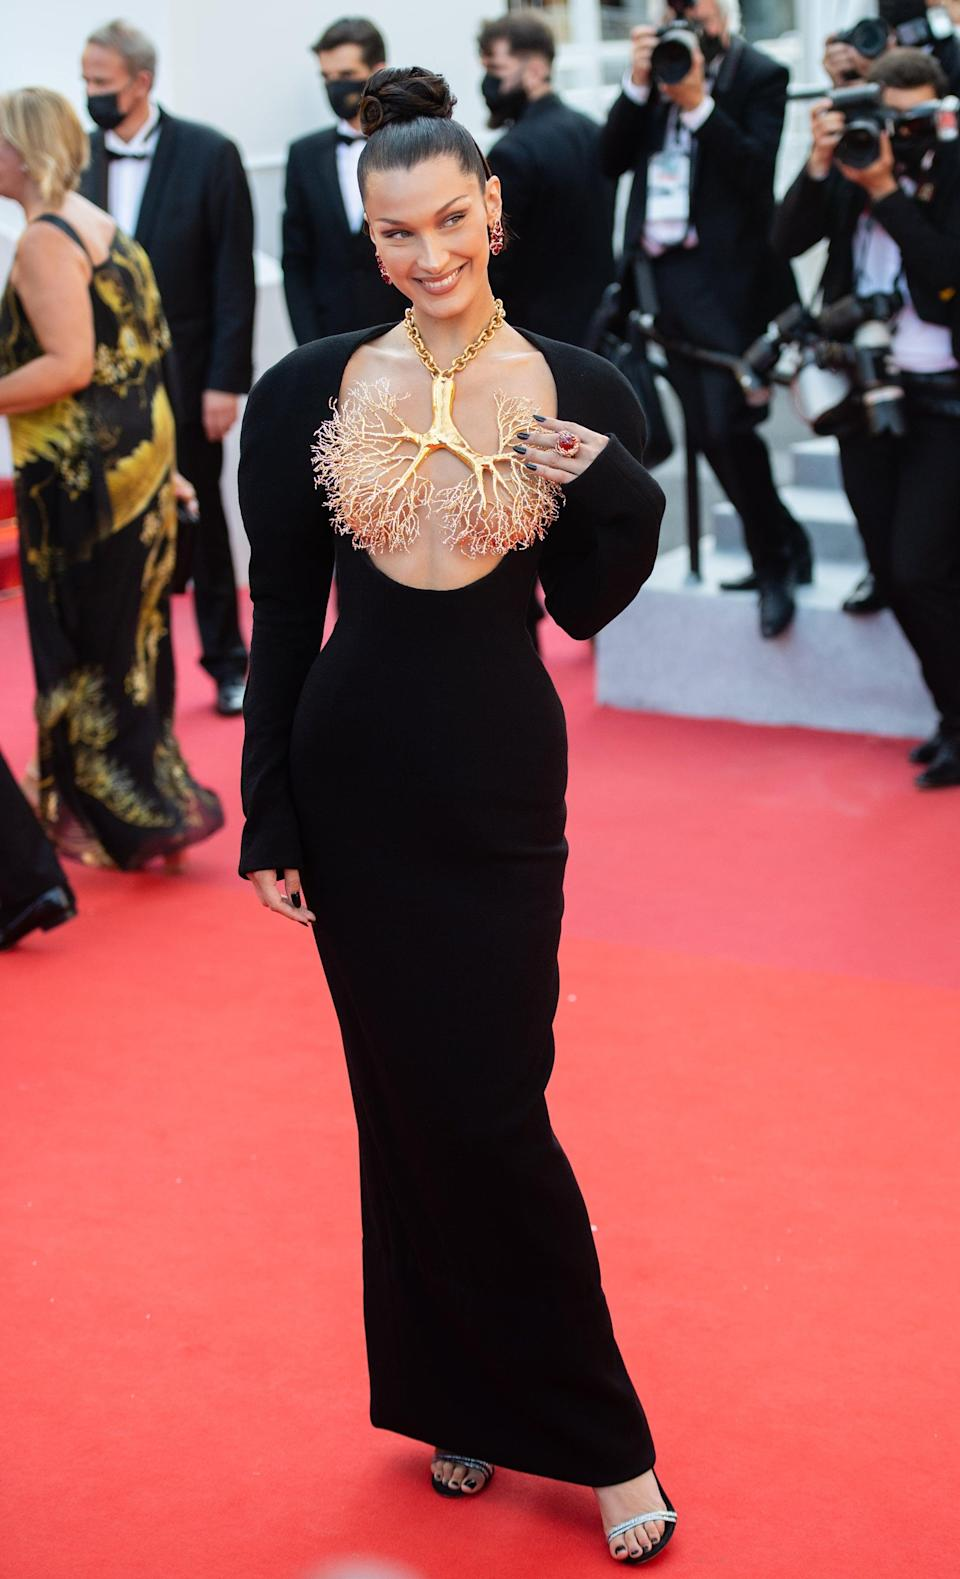 """<p>Wearing a <a href=""""https://www.popsugar.com/fashion/bella-hadid-schiaparelli-outfit-cannes-48413797"""" class=""""link rapid-noclick-resp"""" rel=""""nofollow noopener"""" target=""""_blank"""" data-ylk=""""slk:Schiaparelli dress"""">Schiaparelli dress</a> with a massive brass necklace in the shape of branched lungs adorned with rhinestones to cover her chest.</p>"""